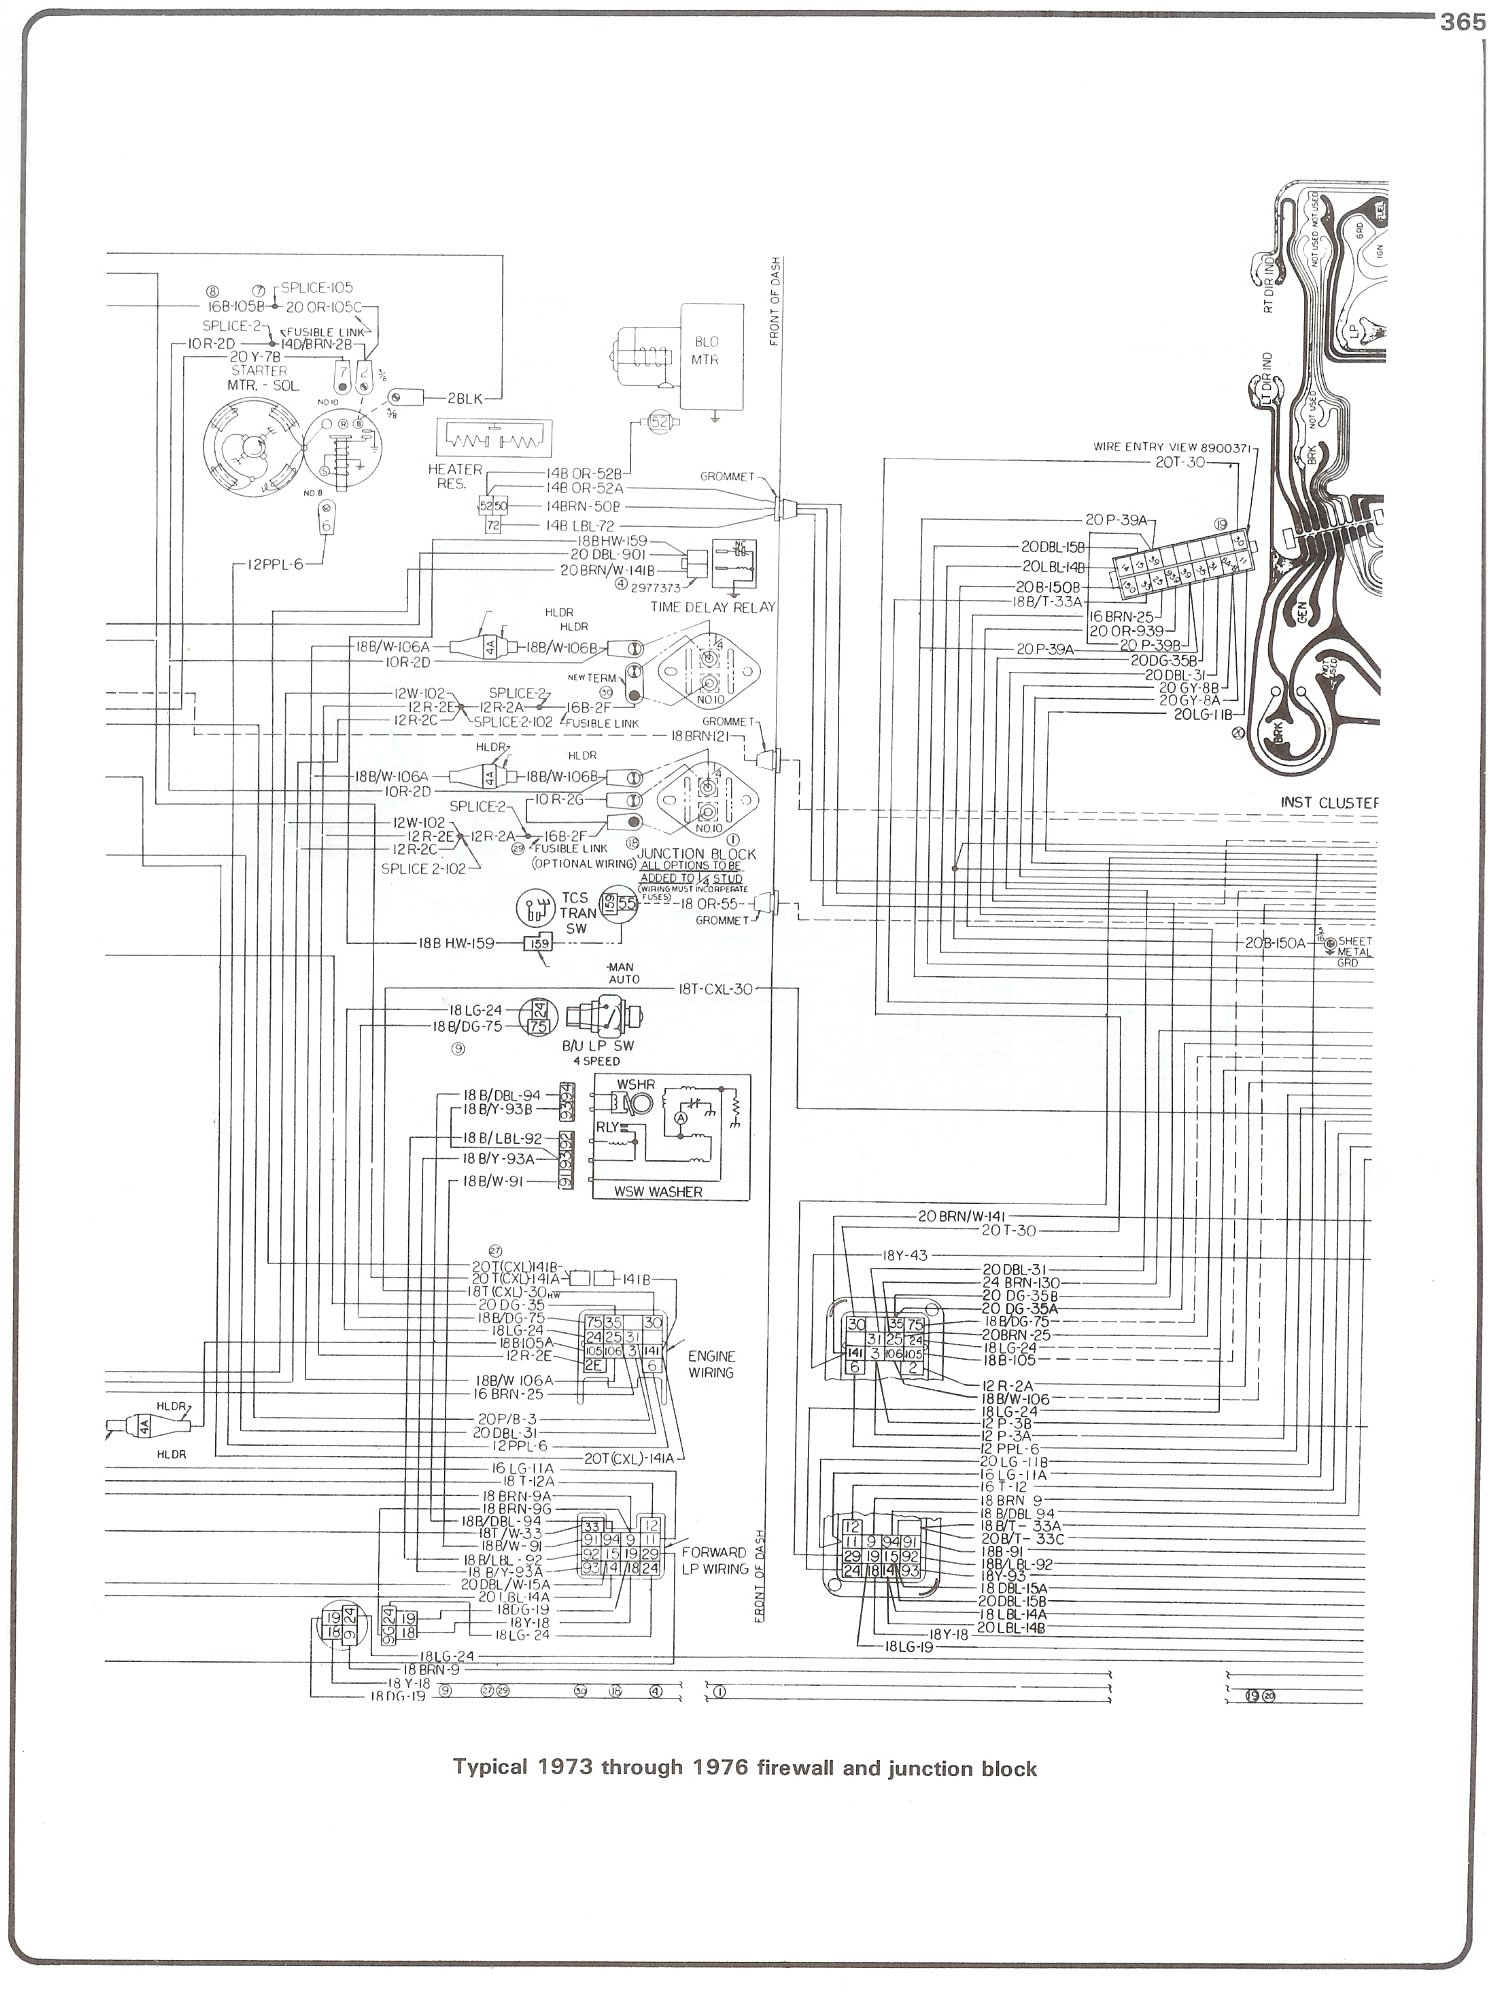 Gm Ignition Wiring Harness Diagram